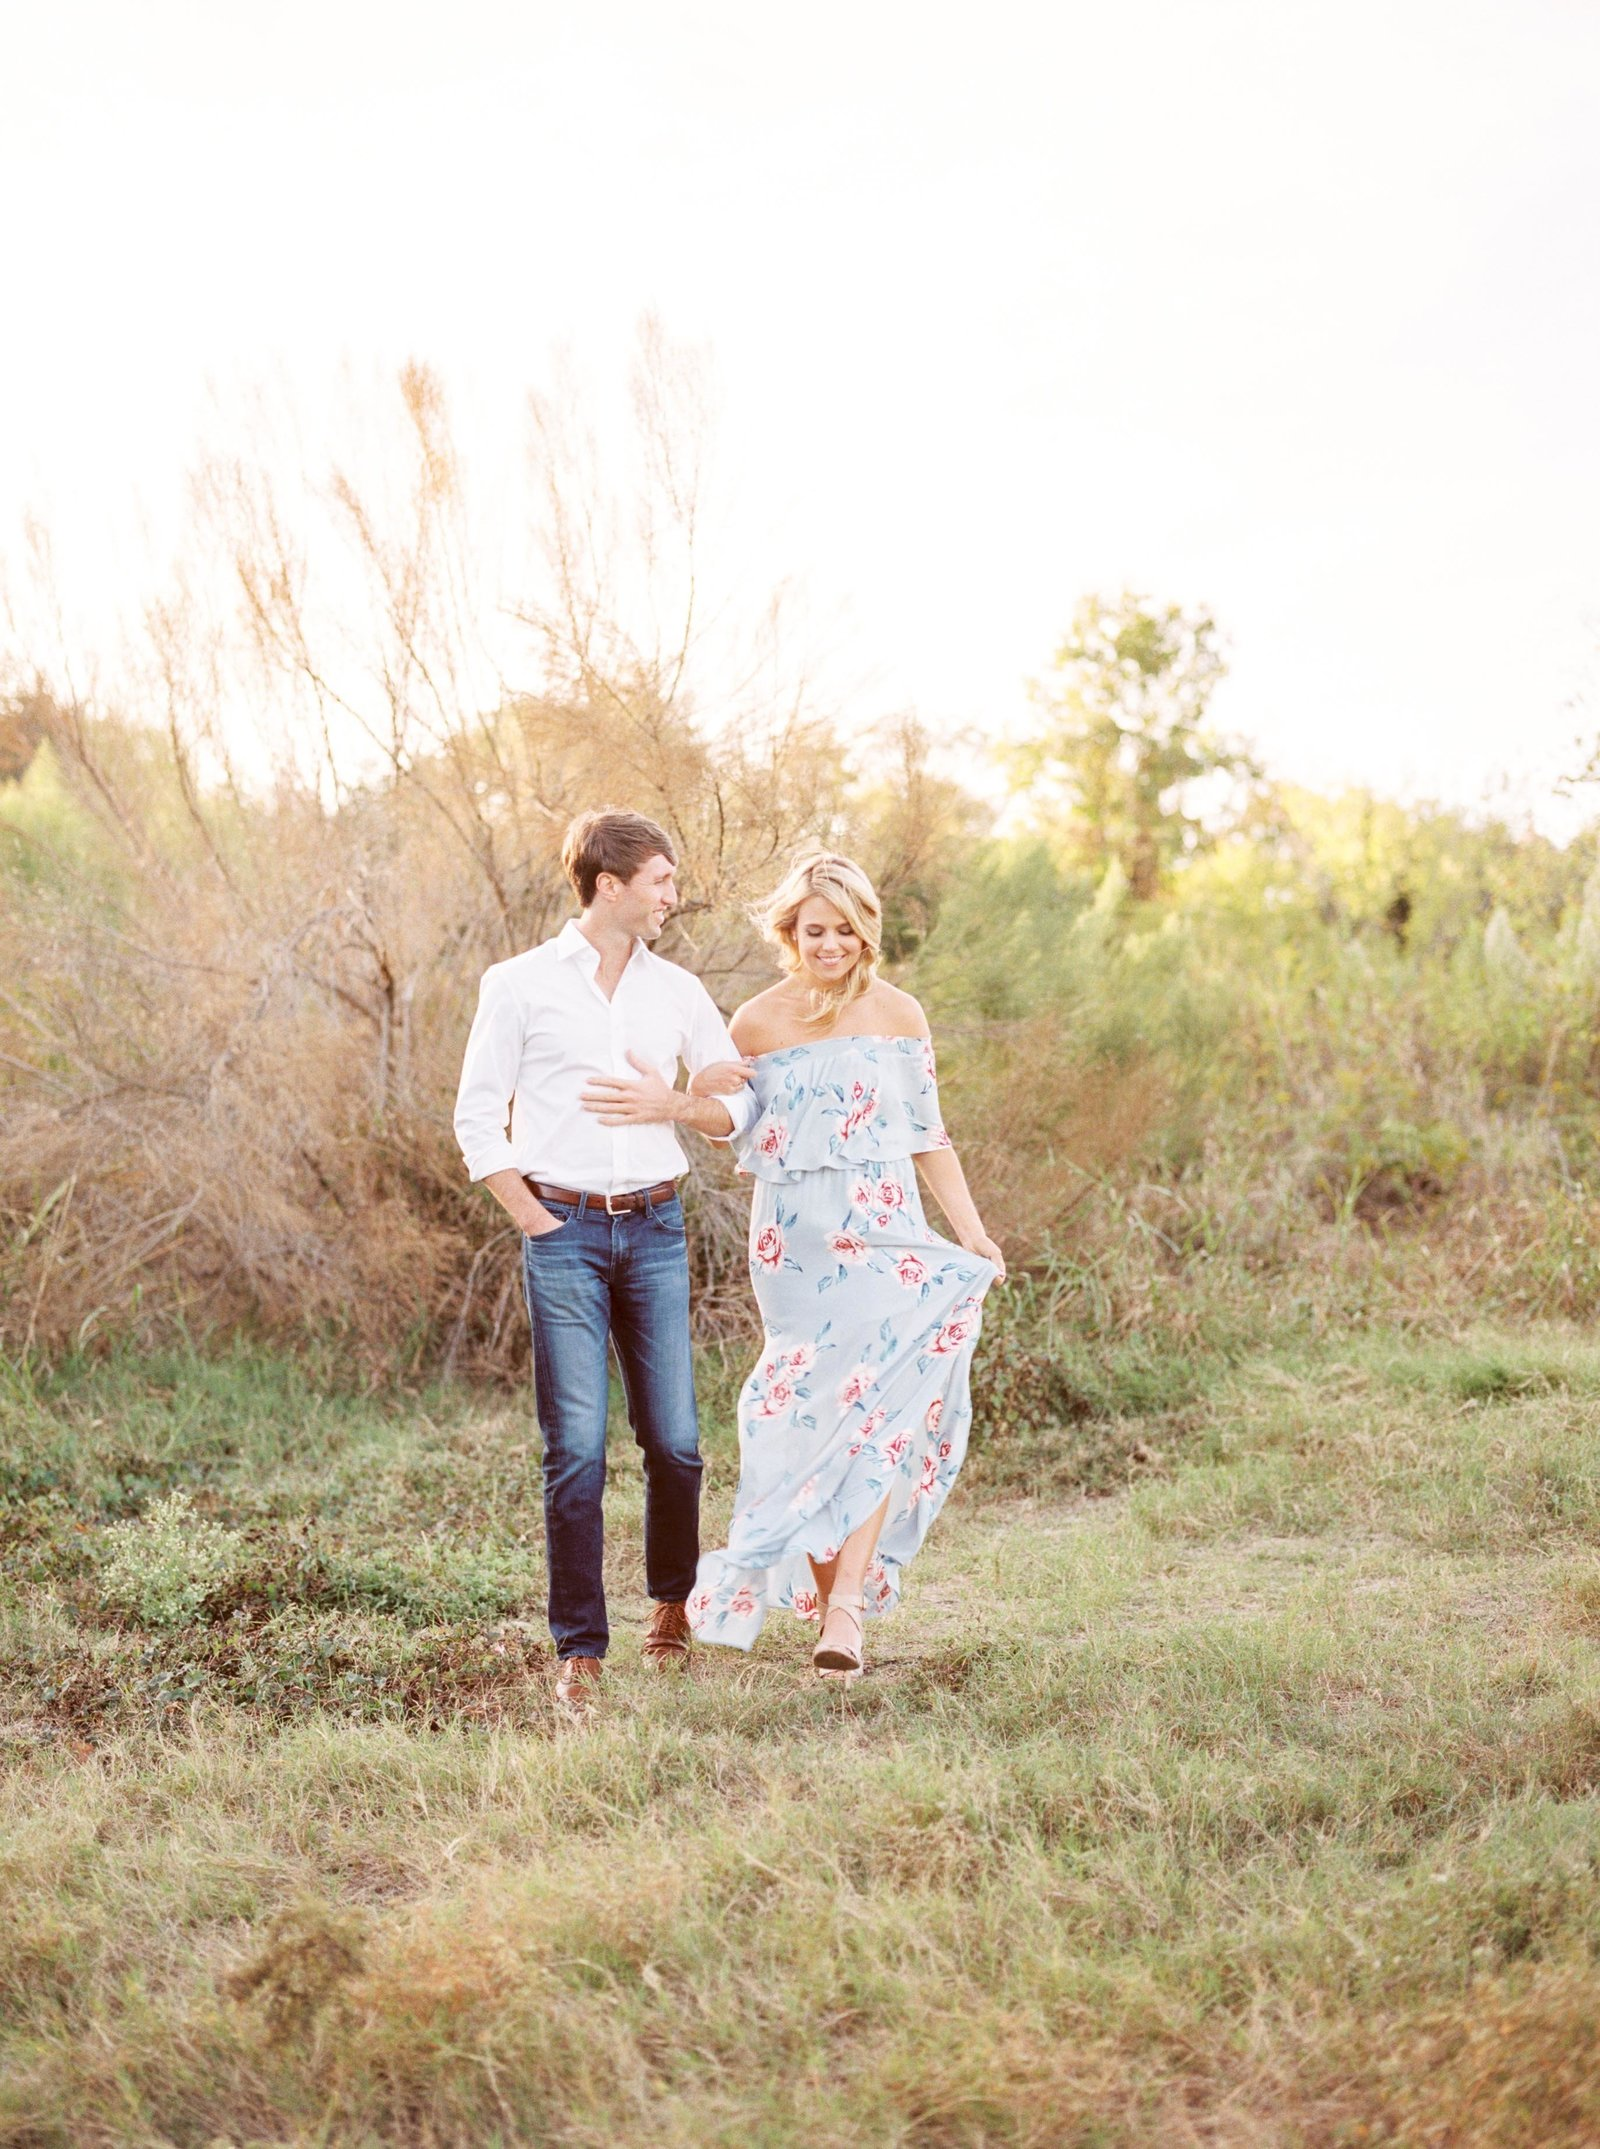 Dallas engagement photographer_Chelsea Q White-54